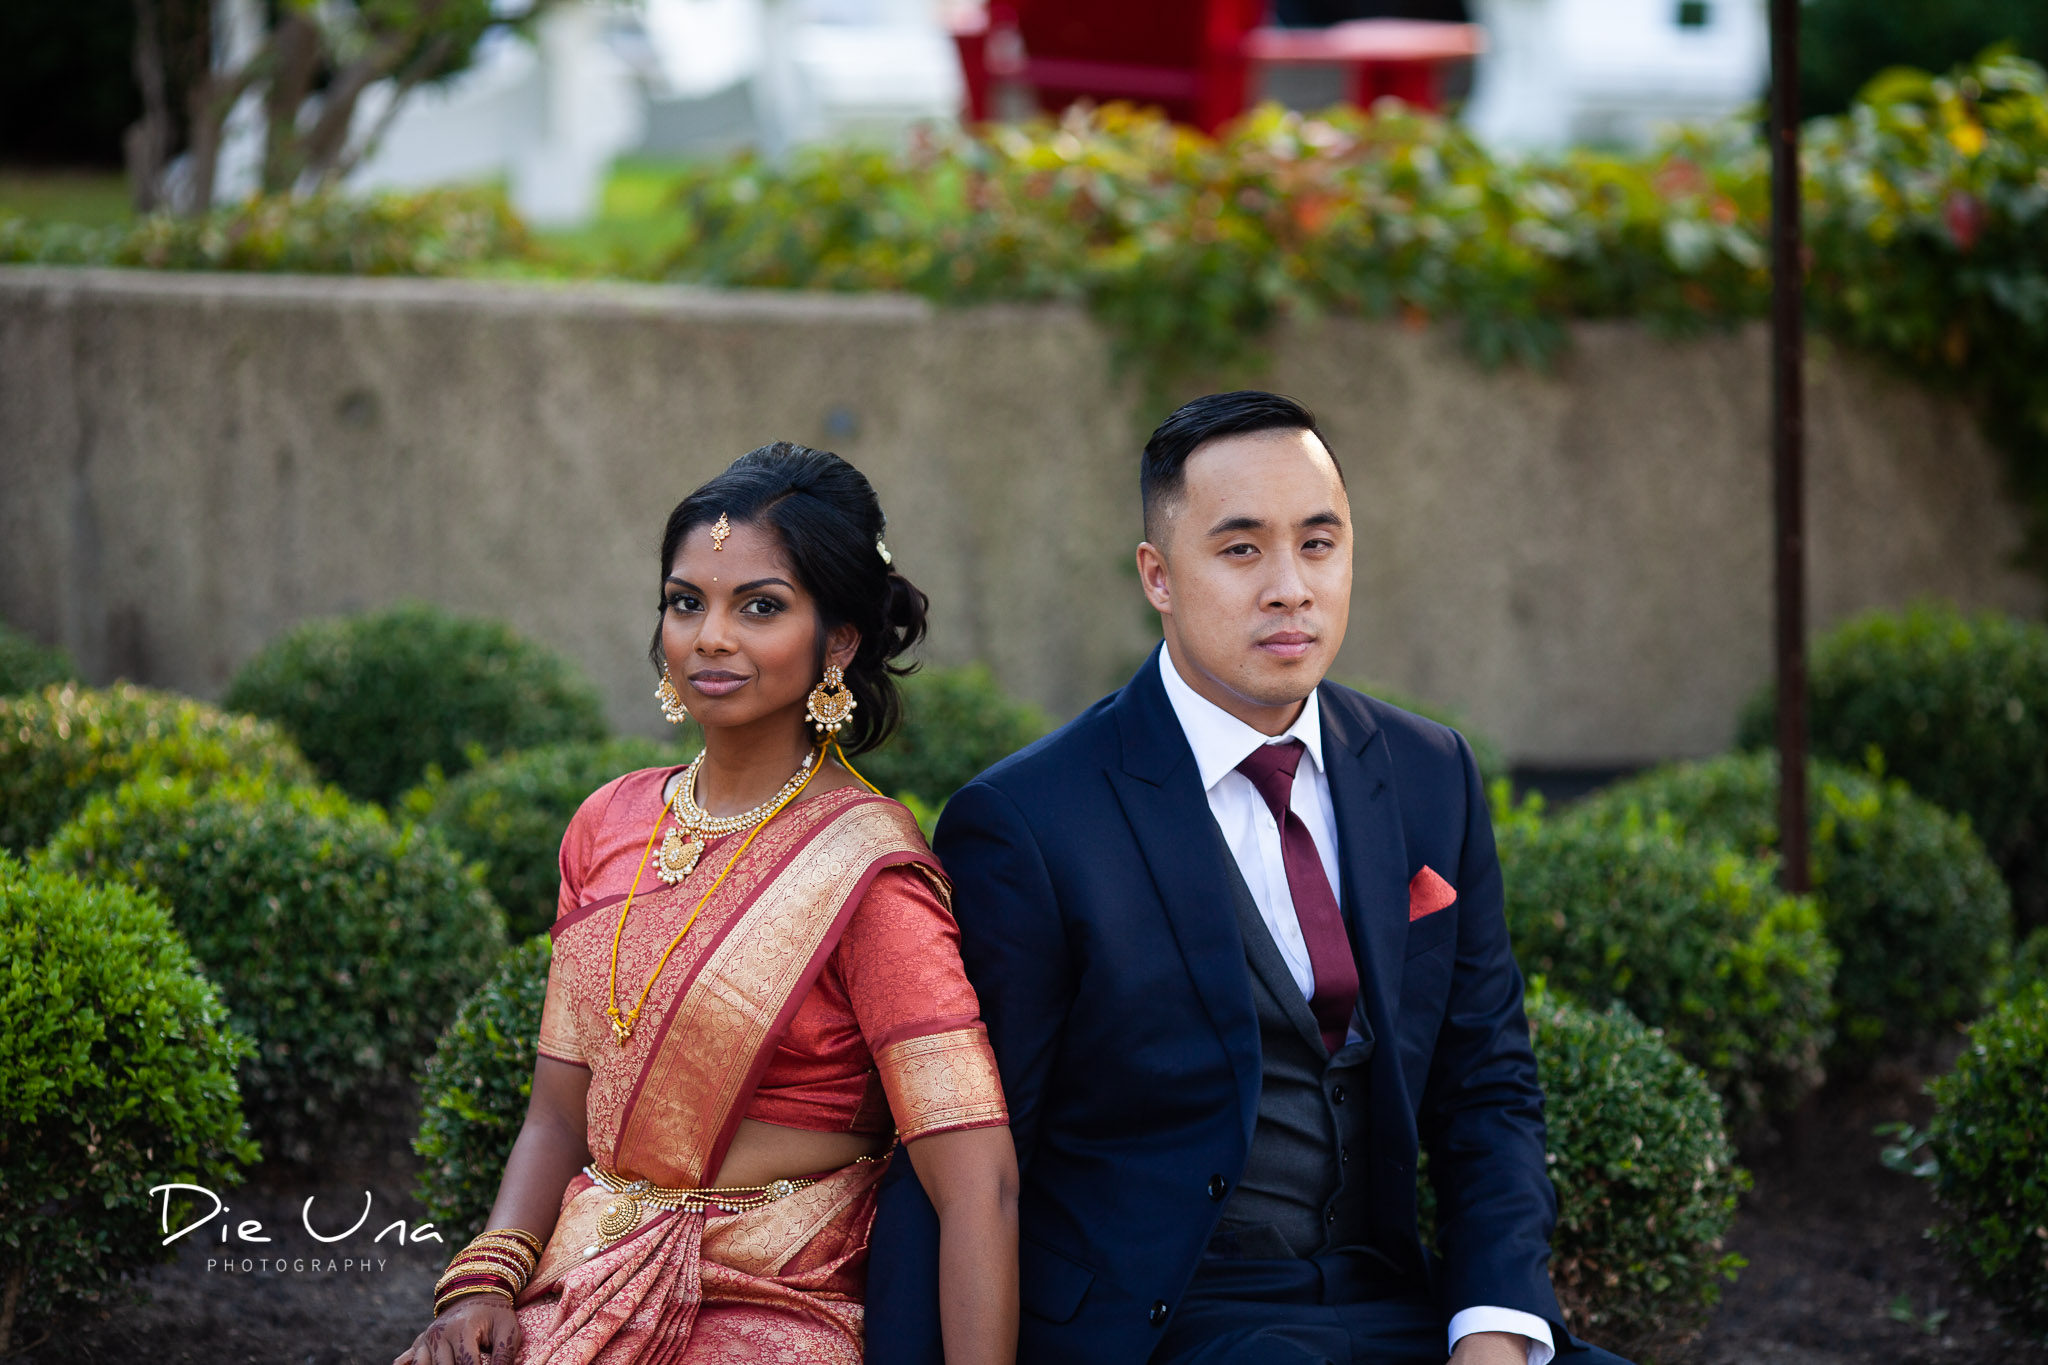 bride and groom both looking at camera.jpg